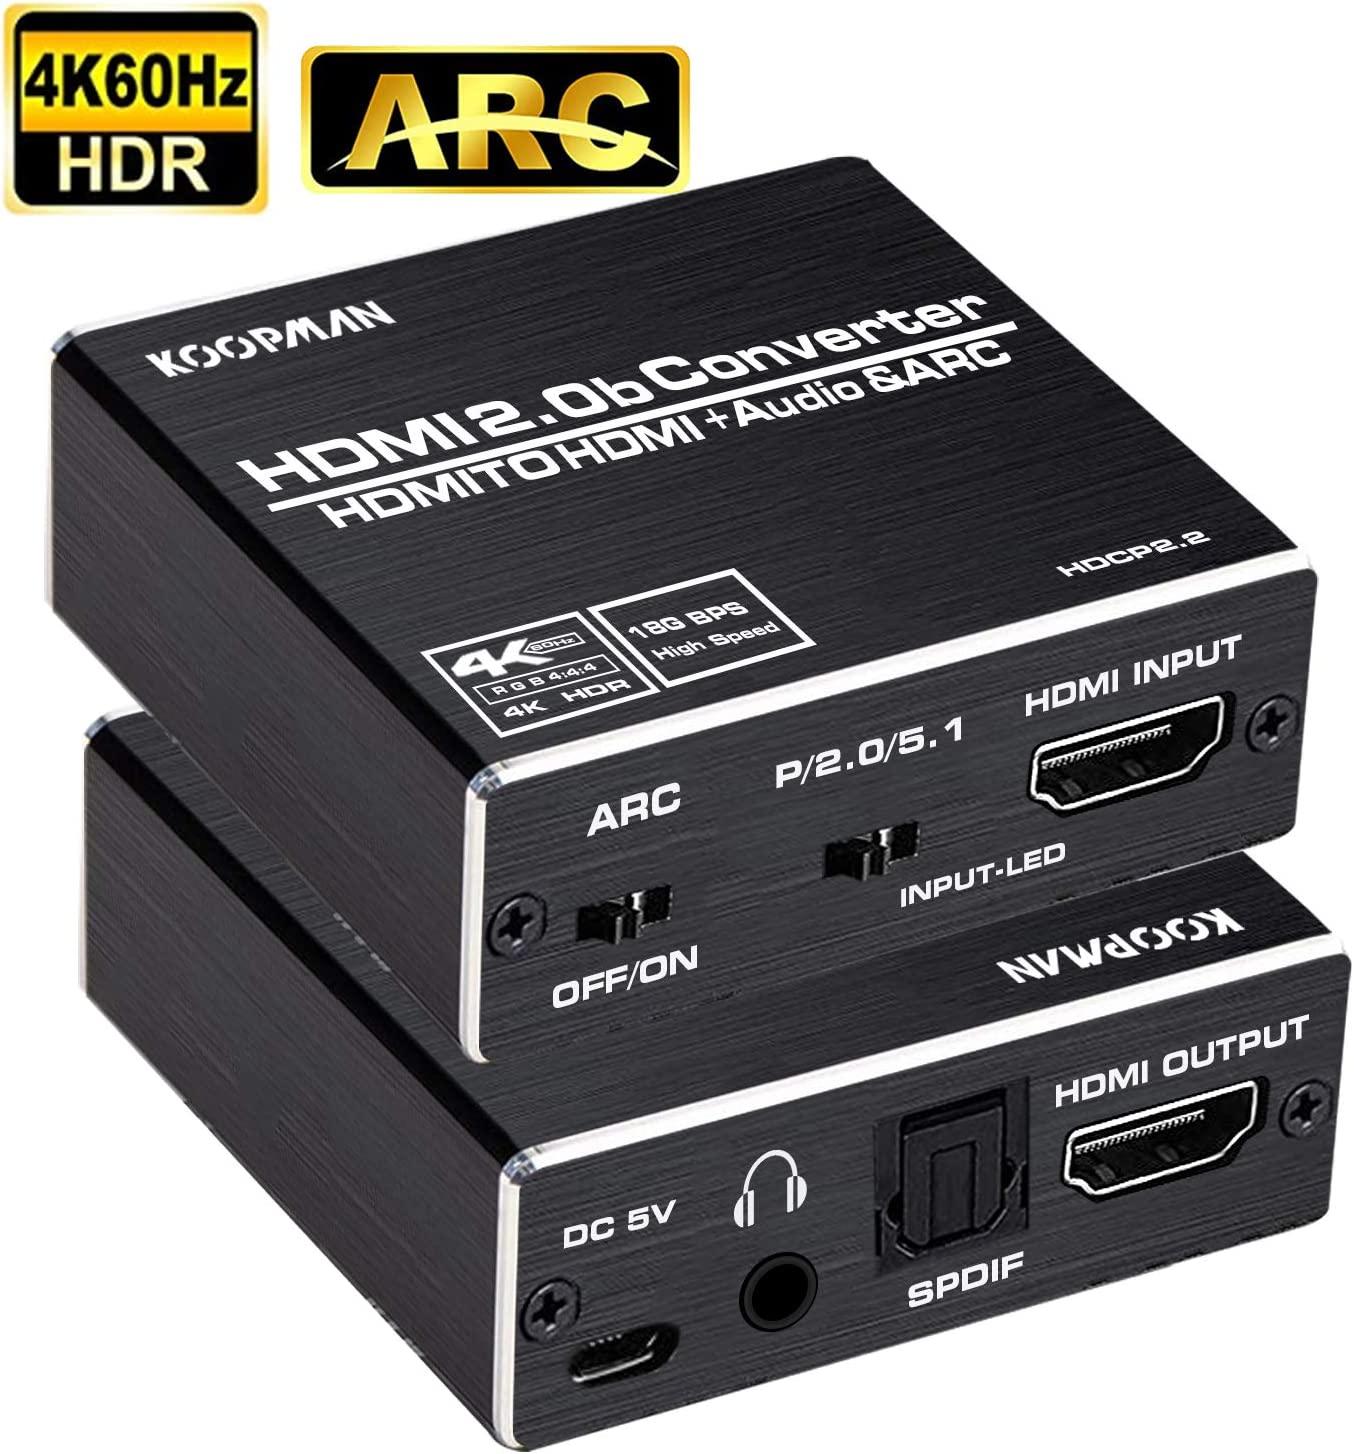 + 3.5mm AUX Stereo Audio Converter Supports HDMI 2.0b//4K@60Hz//HDCP 2 5.1 SPDIF Koopman HDMI to HDMI 4K HDMI to HDMI and Audio Extractor Optical Toslink 2//3D//Dolby 5.1 HDMI Audio Adapter